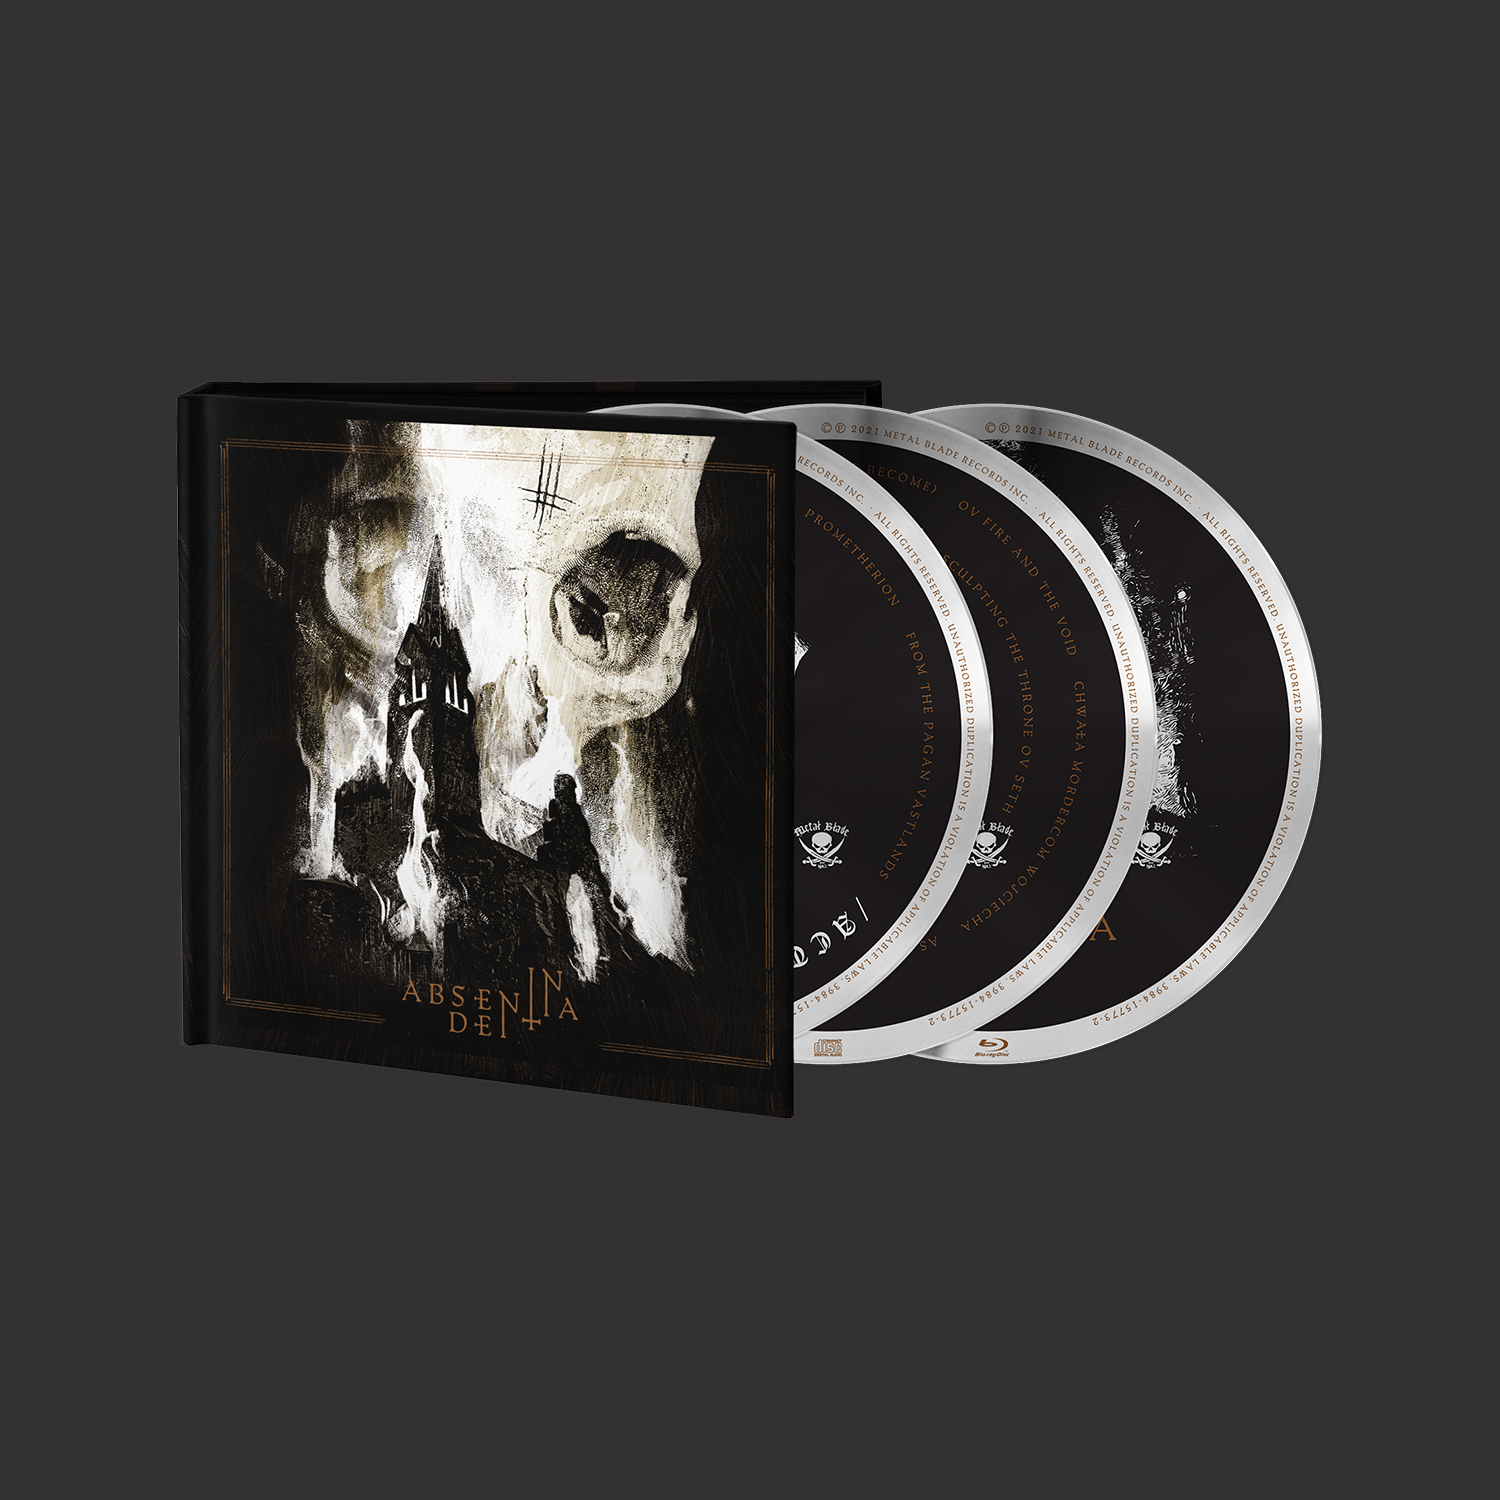 IMAGE | In Absentia Dei 2xCD/Blu-Ray